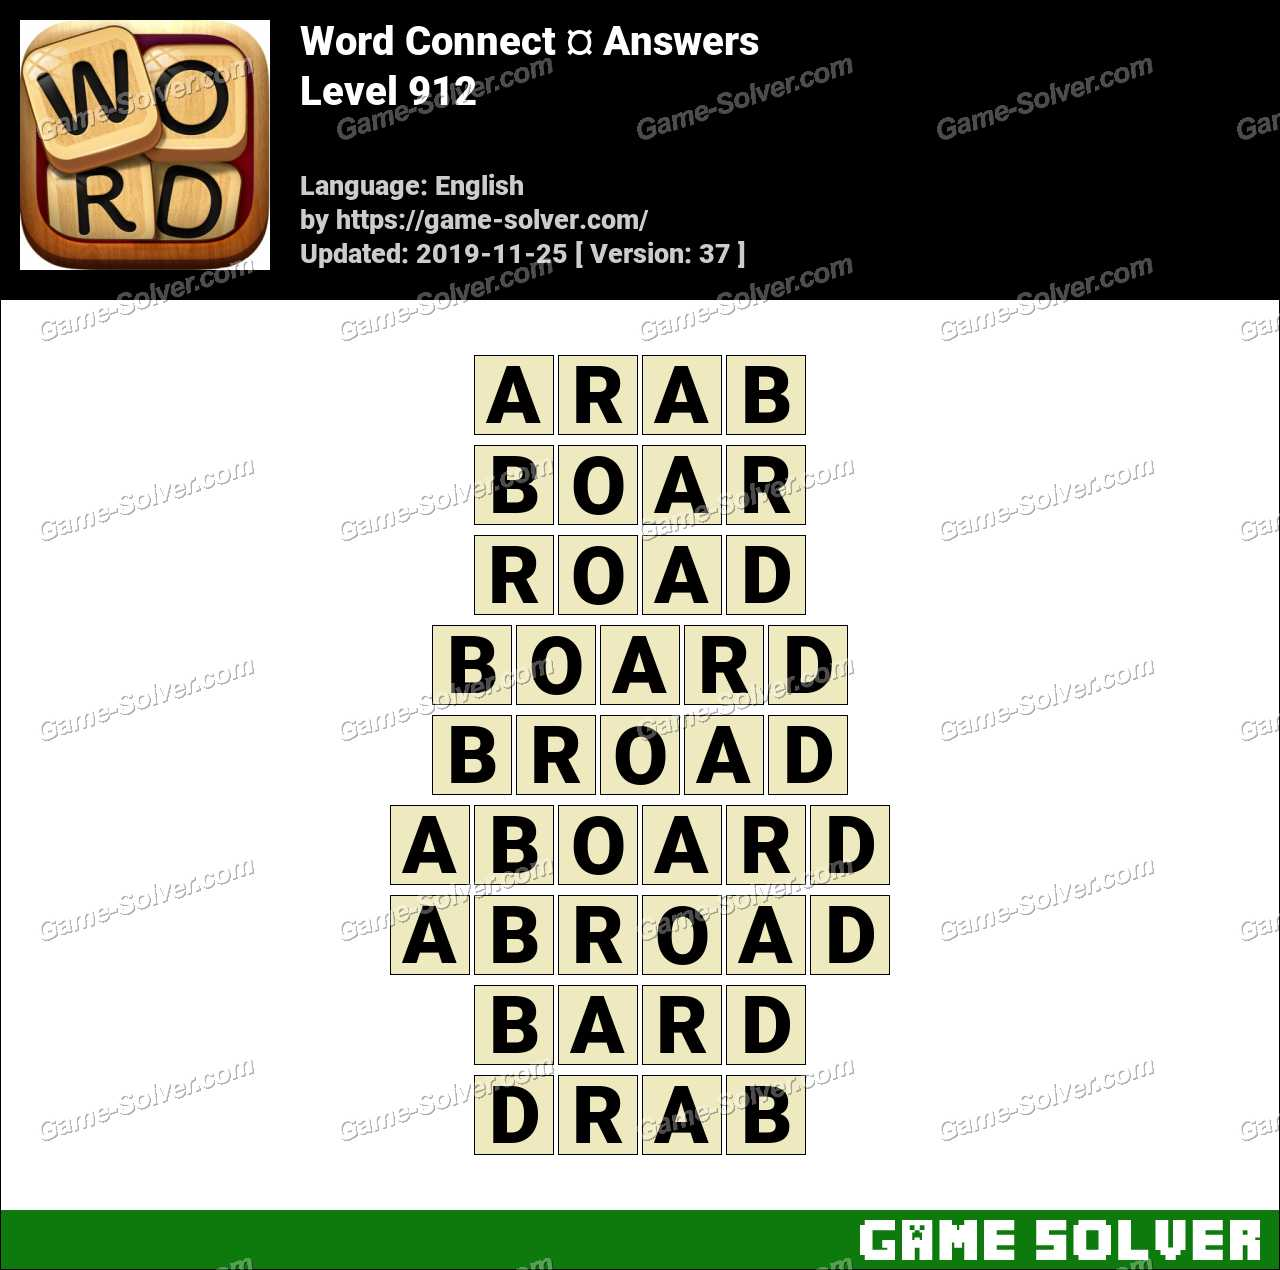 Word Connect Level 912 Answers